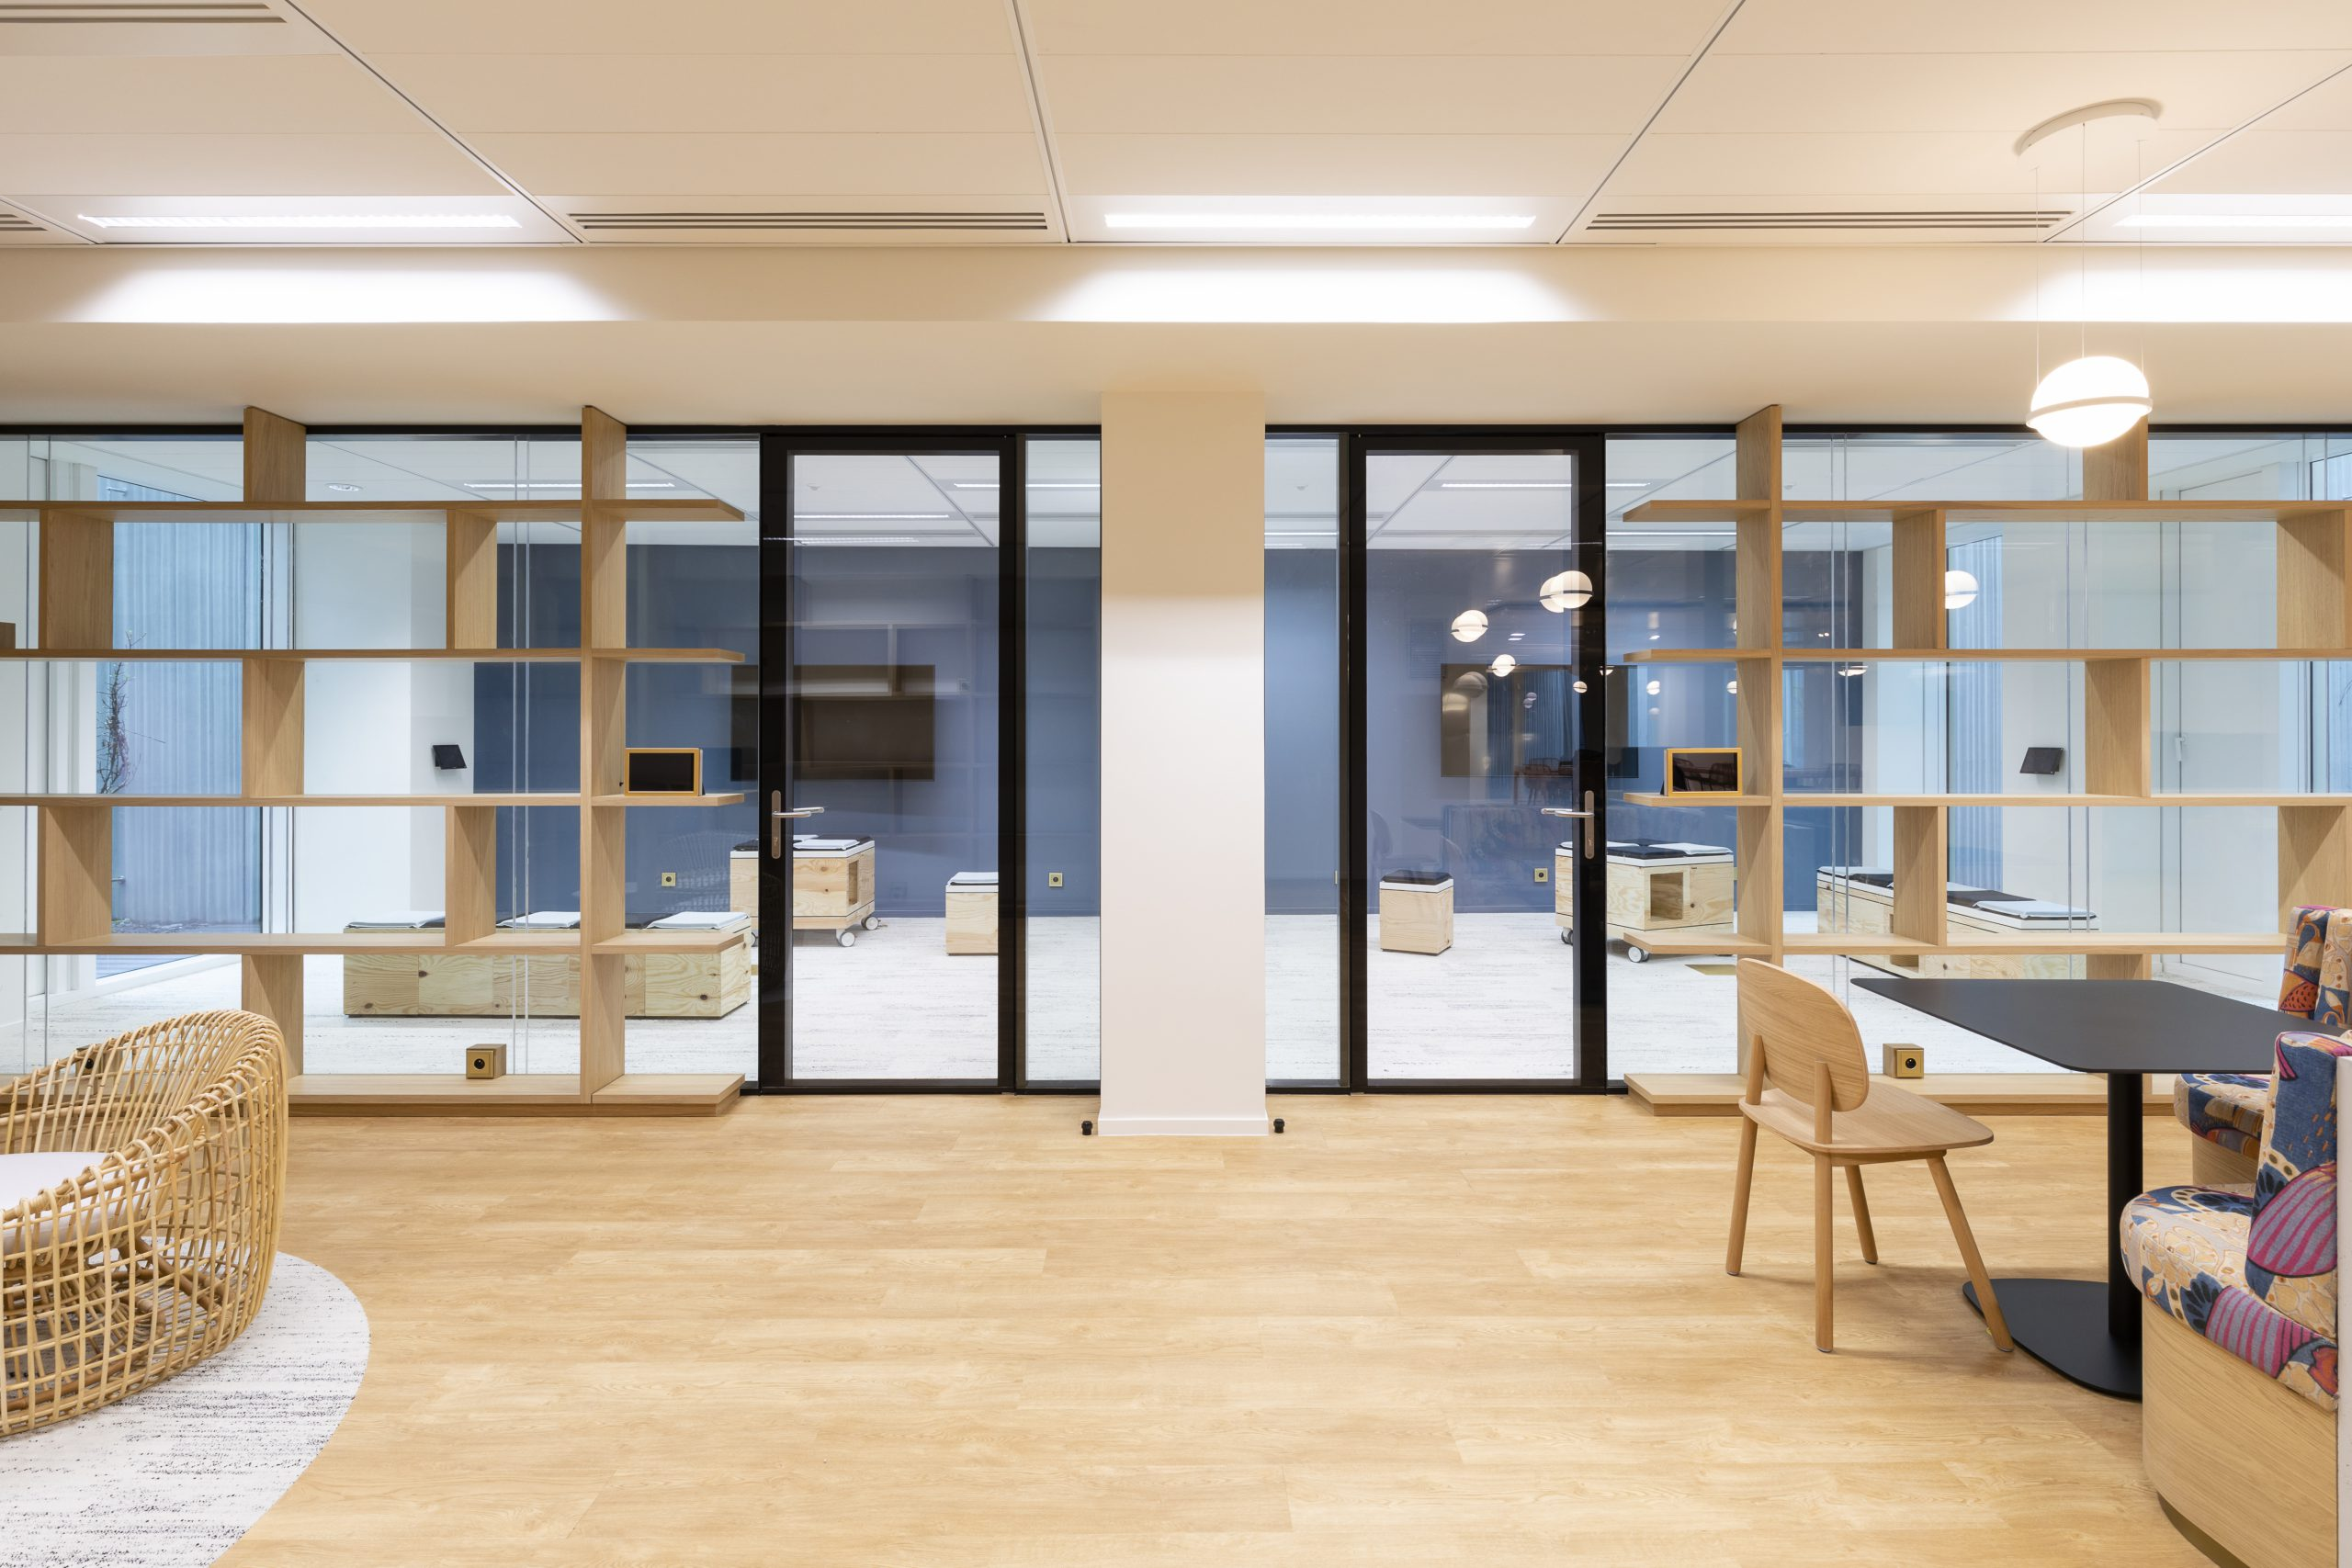 lalinea shines in this high-end office near Paris